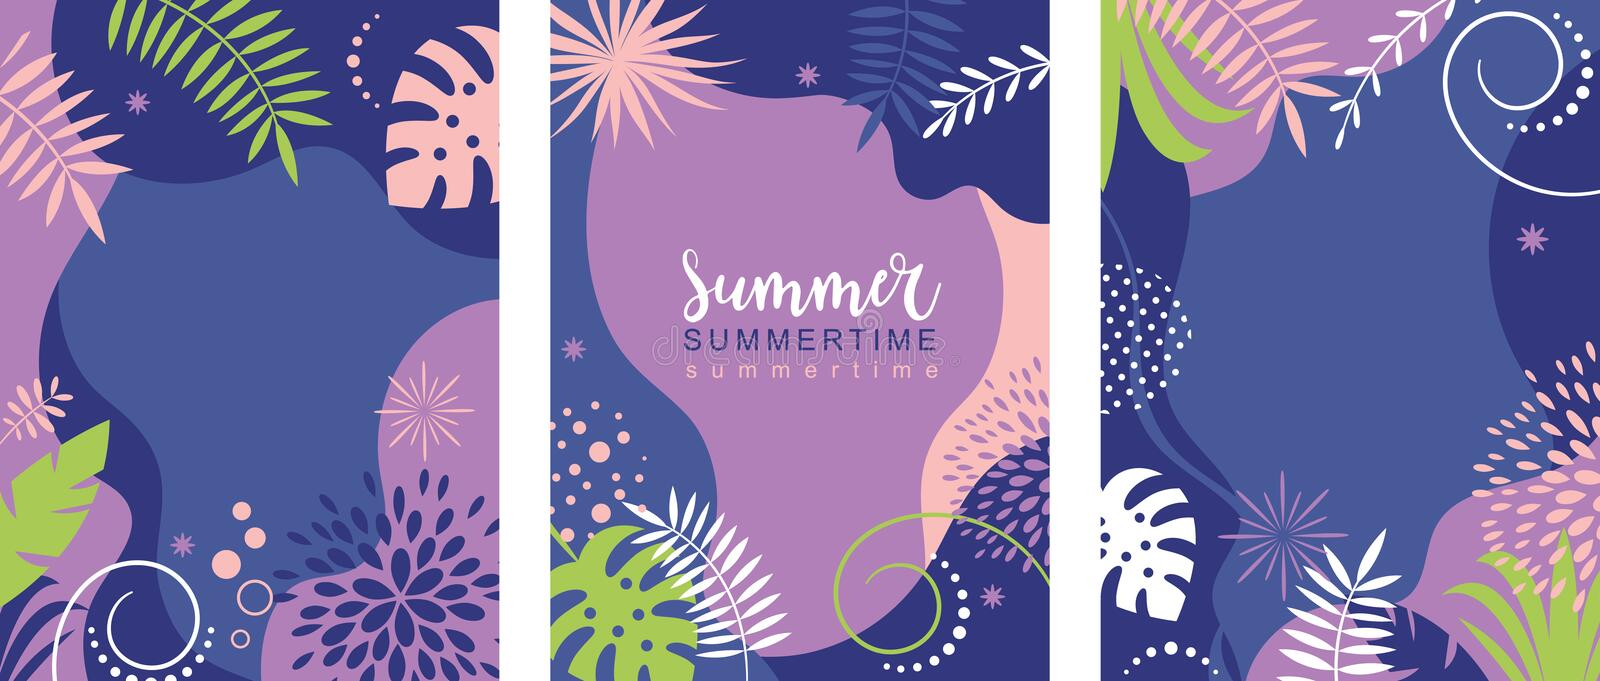 Set of abstract background banners designs vector illustration